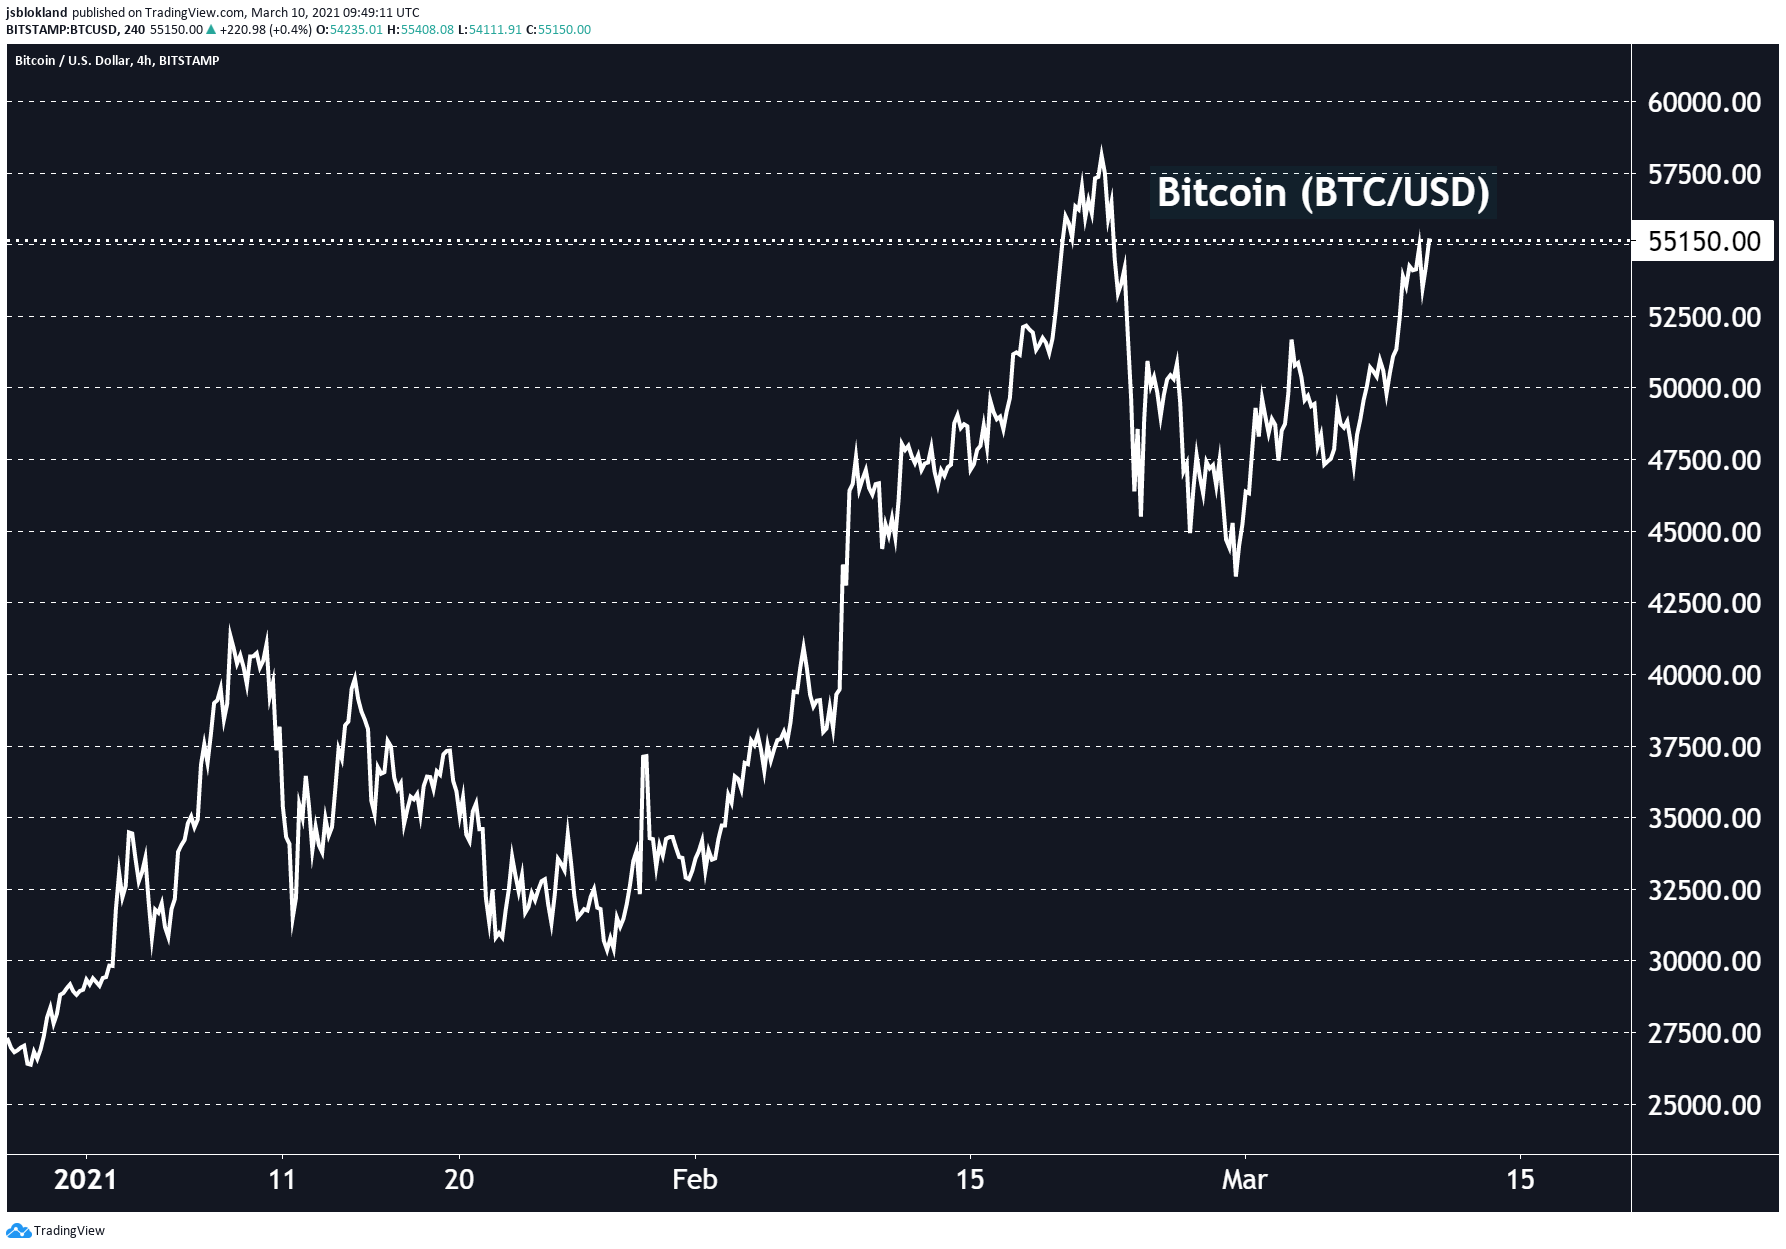 Bitcoin is back on top!